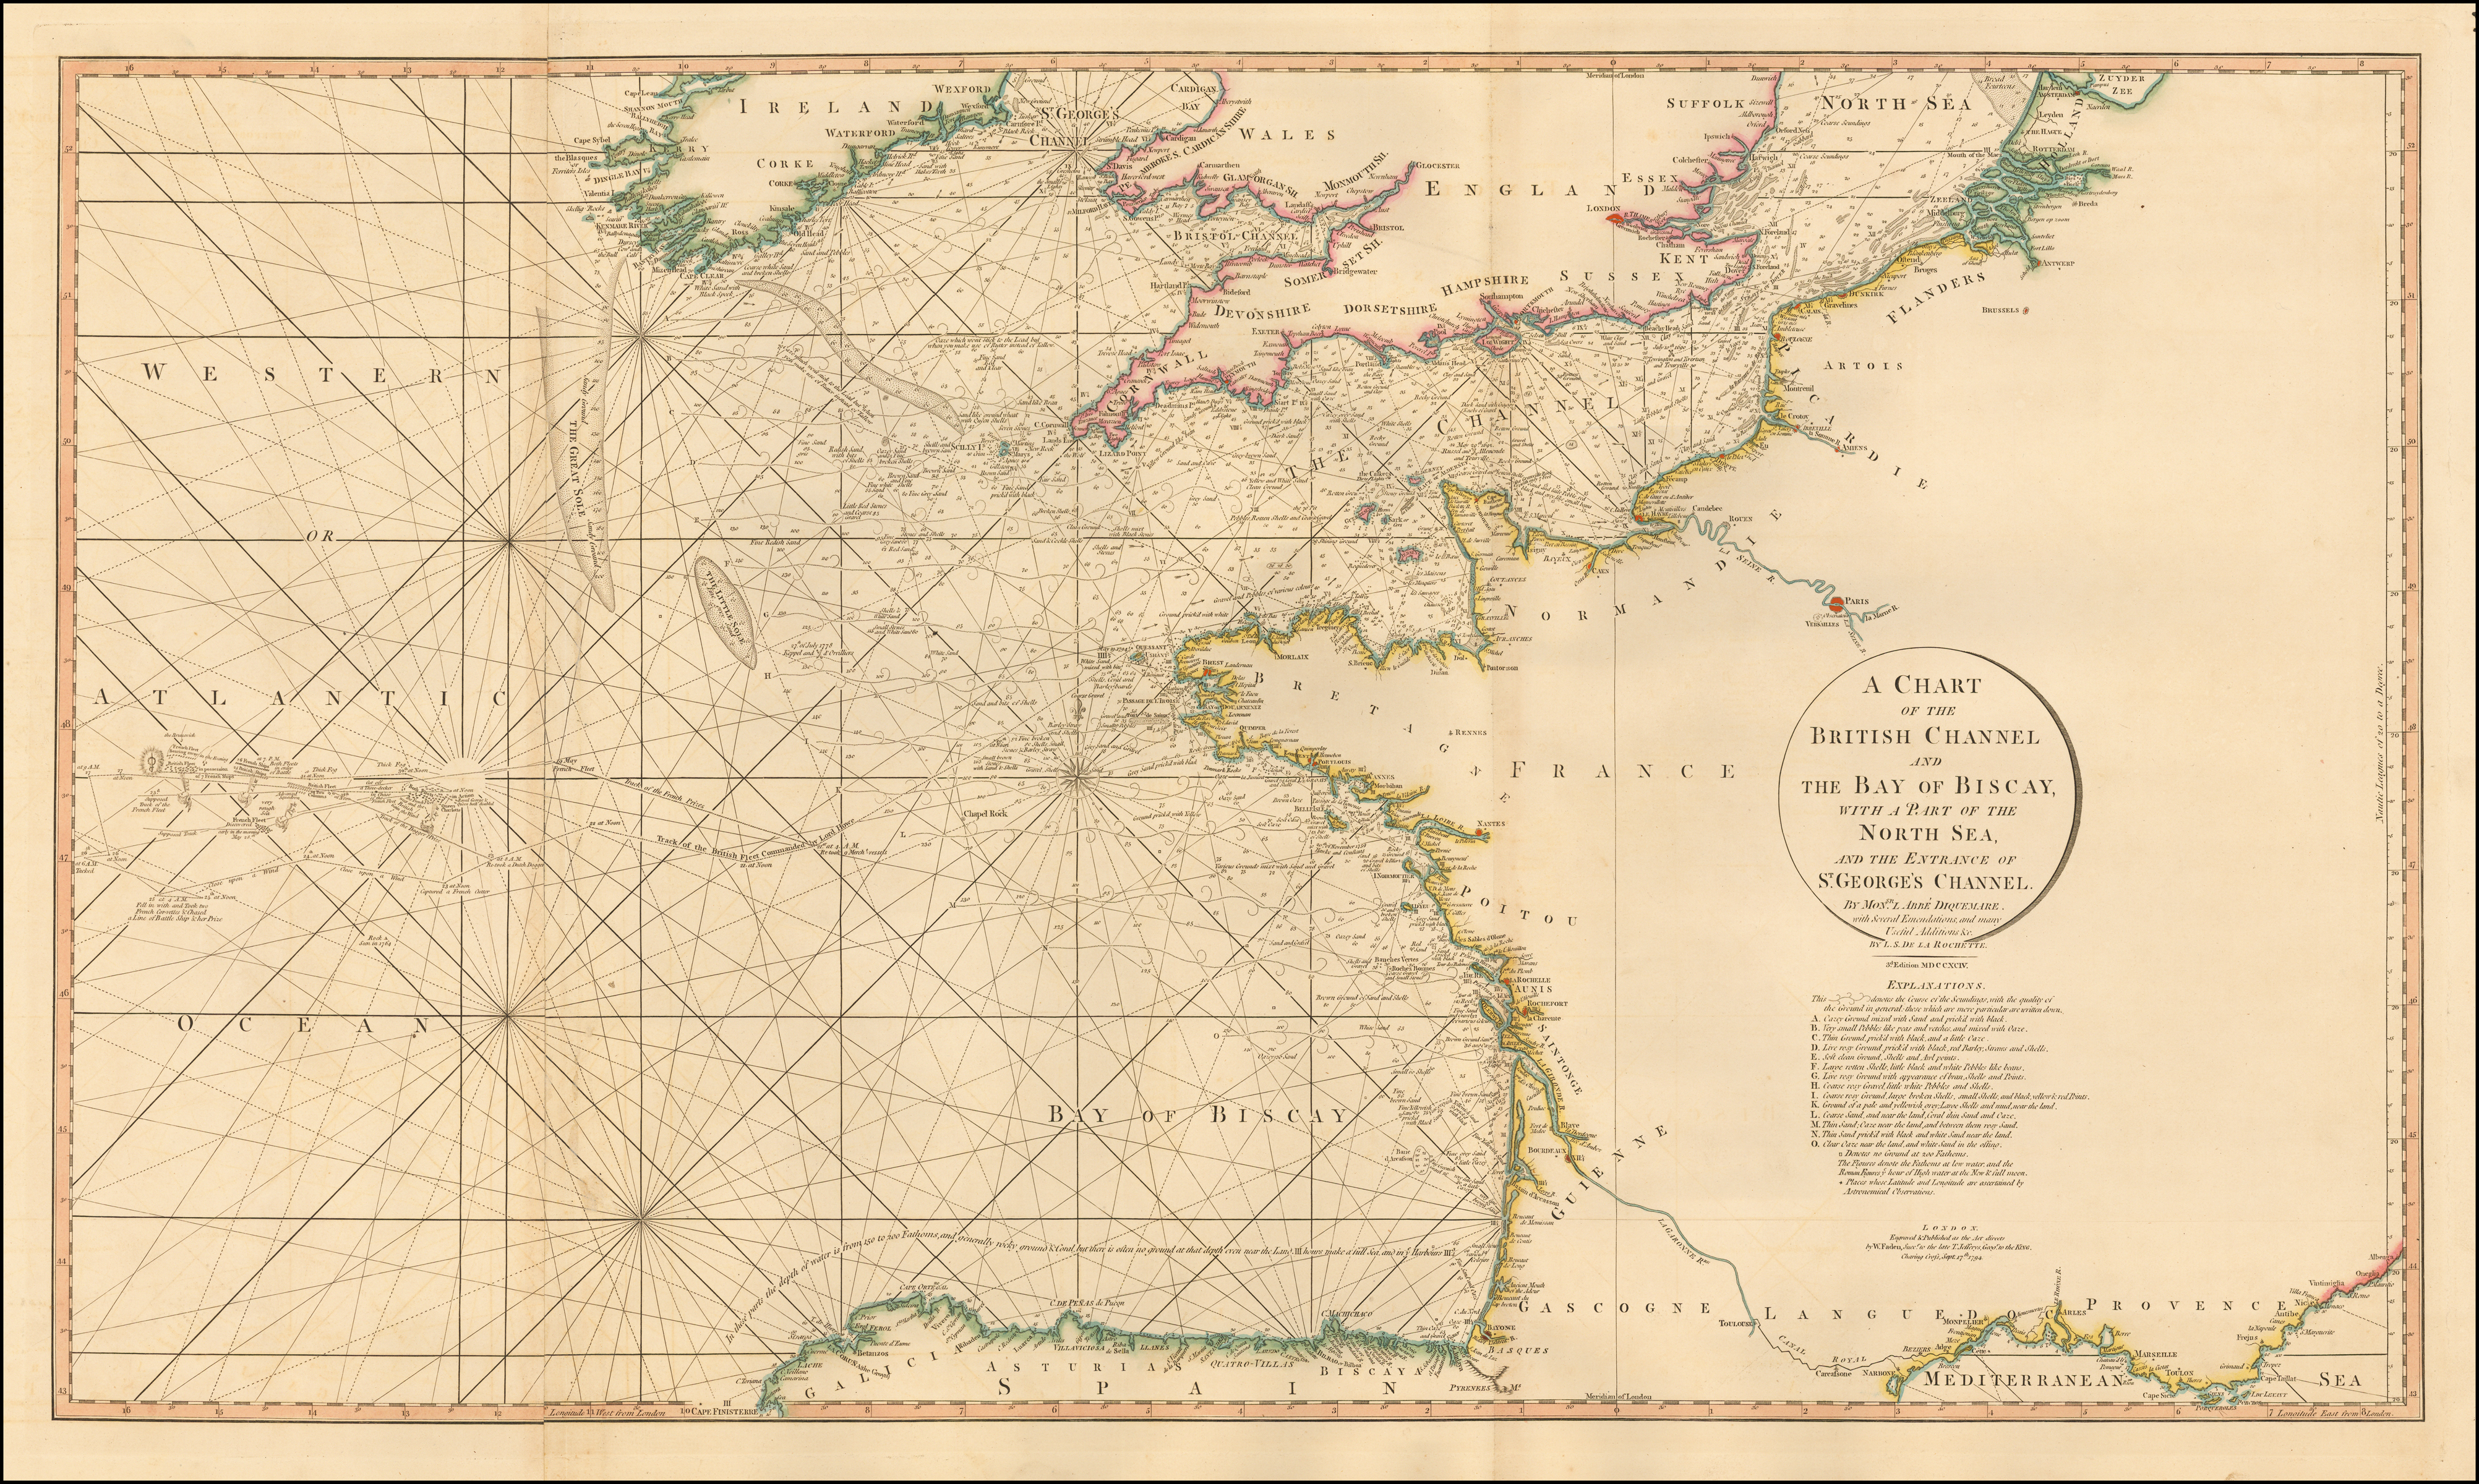 A Chart of the British Channel And The Bay of Biscay, with a ... on map of europe, map of normandy, map of caspian sea, map of strait of hormuz, map of gulf of bothnia, map of arctic ocean, map of england, map of celtic sea, map of wales, map of river thames, map of baltic sea, map of black sea, map of germany, map of moscow, map of rome, map of north sea, map of ural mountains, map of adriatic sea, map of bay of biscay, map of danube river,